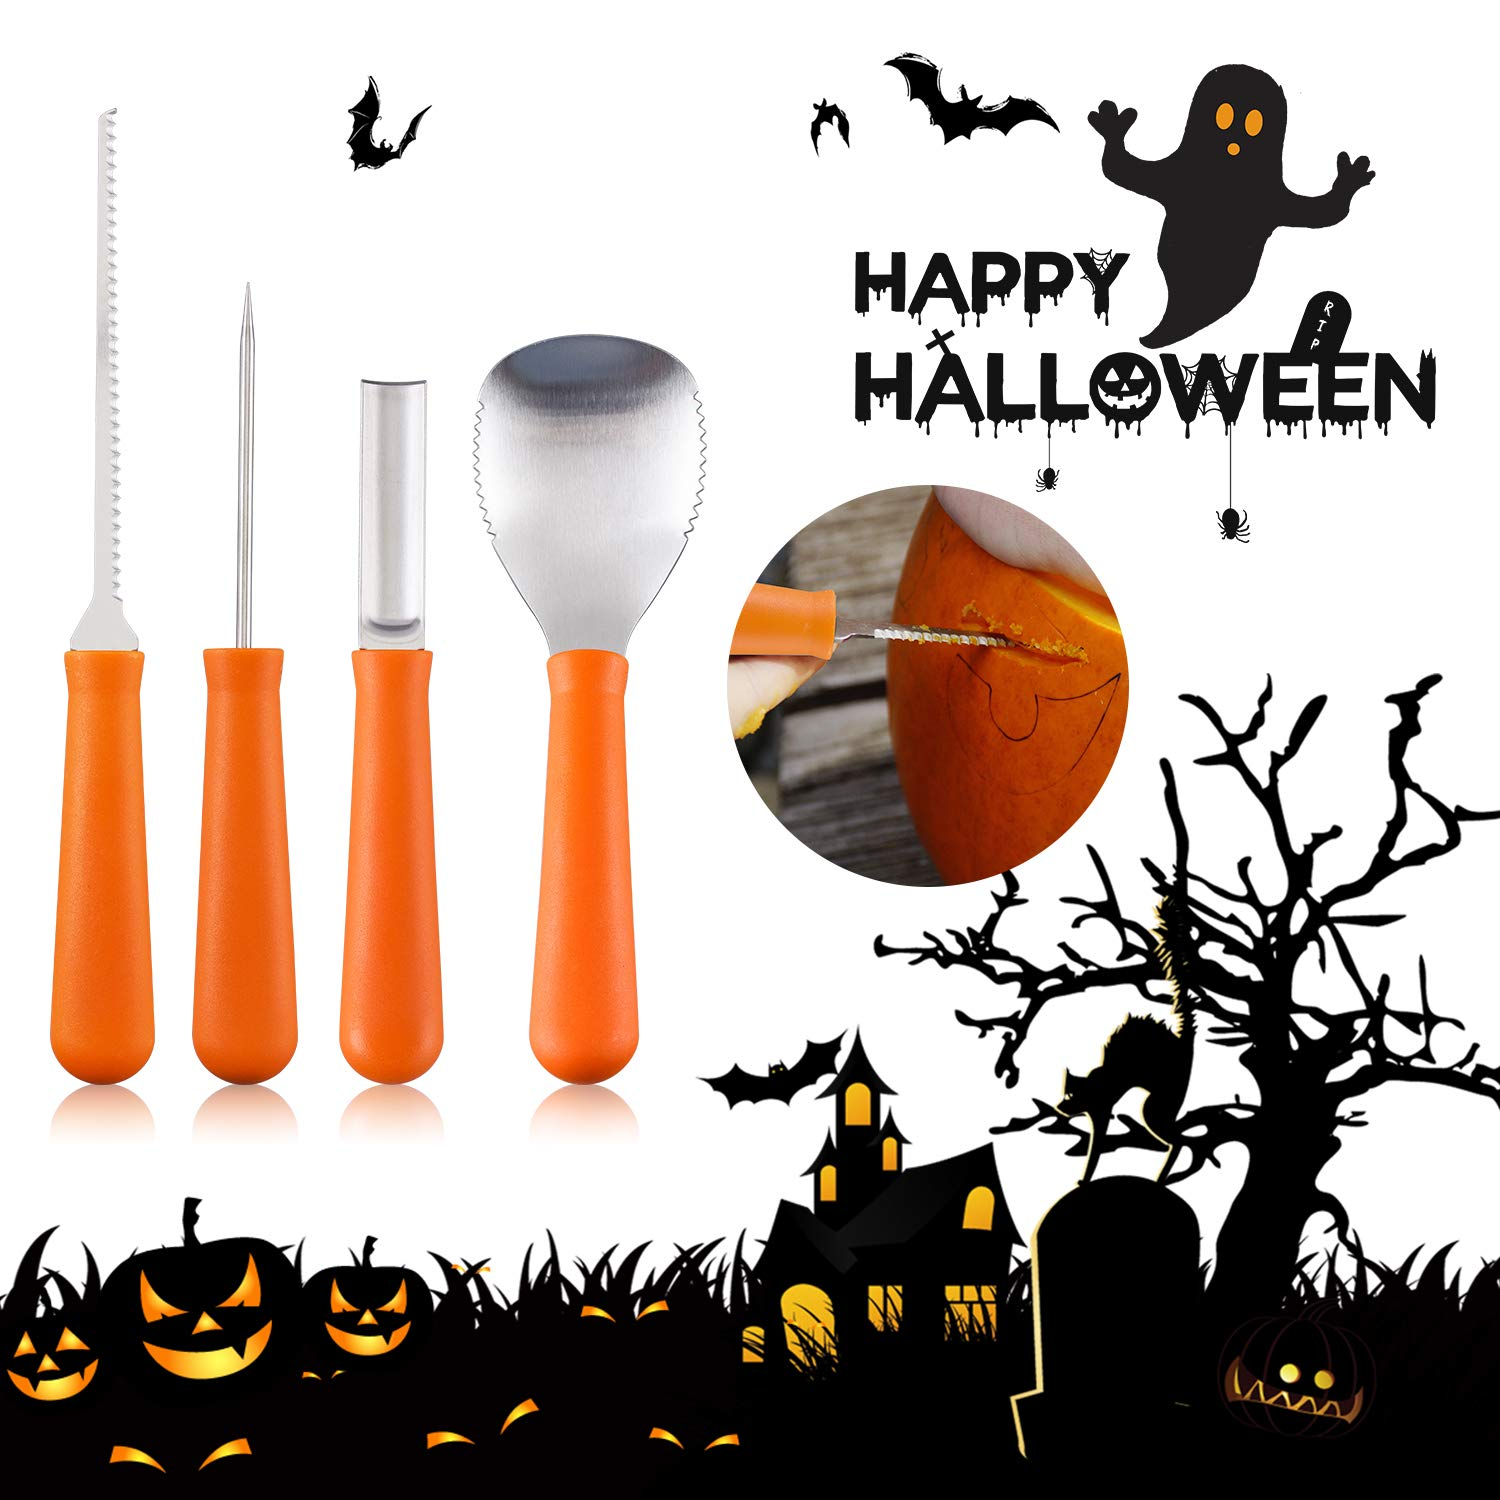 Pumpkin Carving Kit, 4 Pieces Heavy Duty Stainless Steel Pumpkin Carving Tools with 10 Carving Stencils, Ergonomic Design, Perfect for Adult and Children Halloween Decoration by Fantech (Image #3)